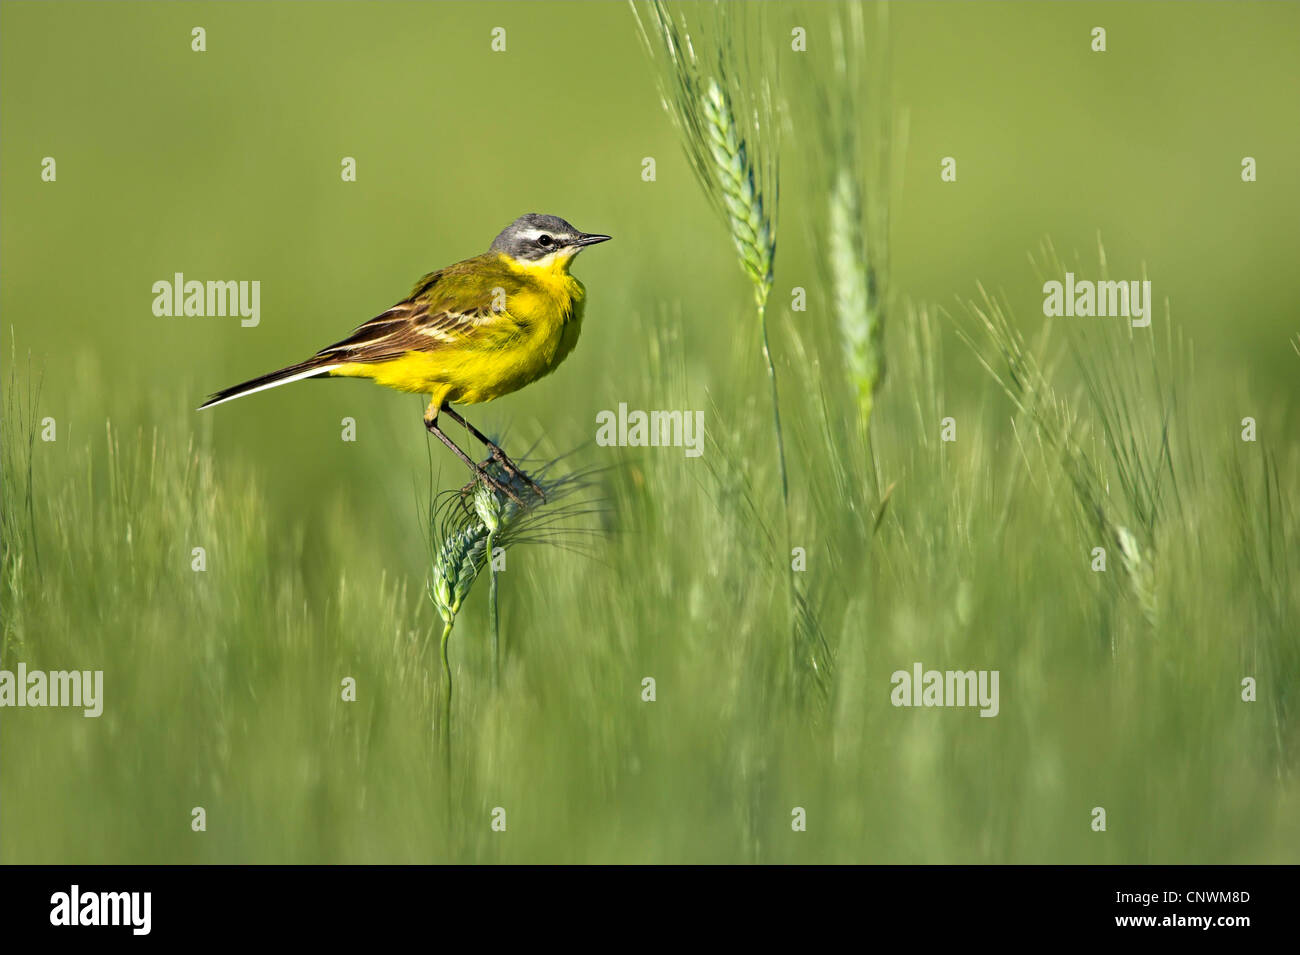 Blue-headed Wagtail, Yellow Wagtail (Motacilla flava flava), sitting in a green barley field on an ear, Germany, - Stock Image